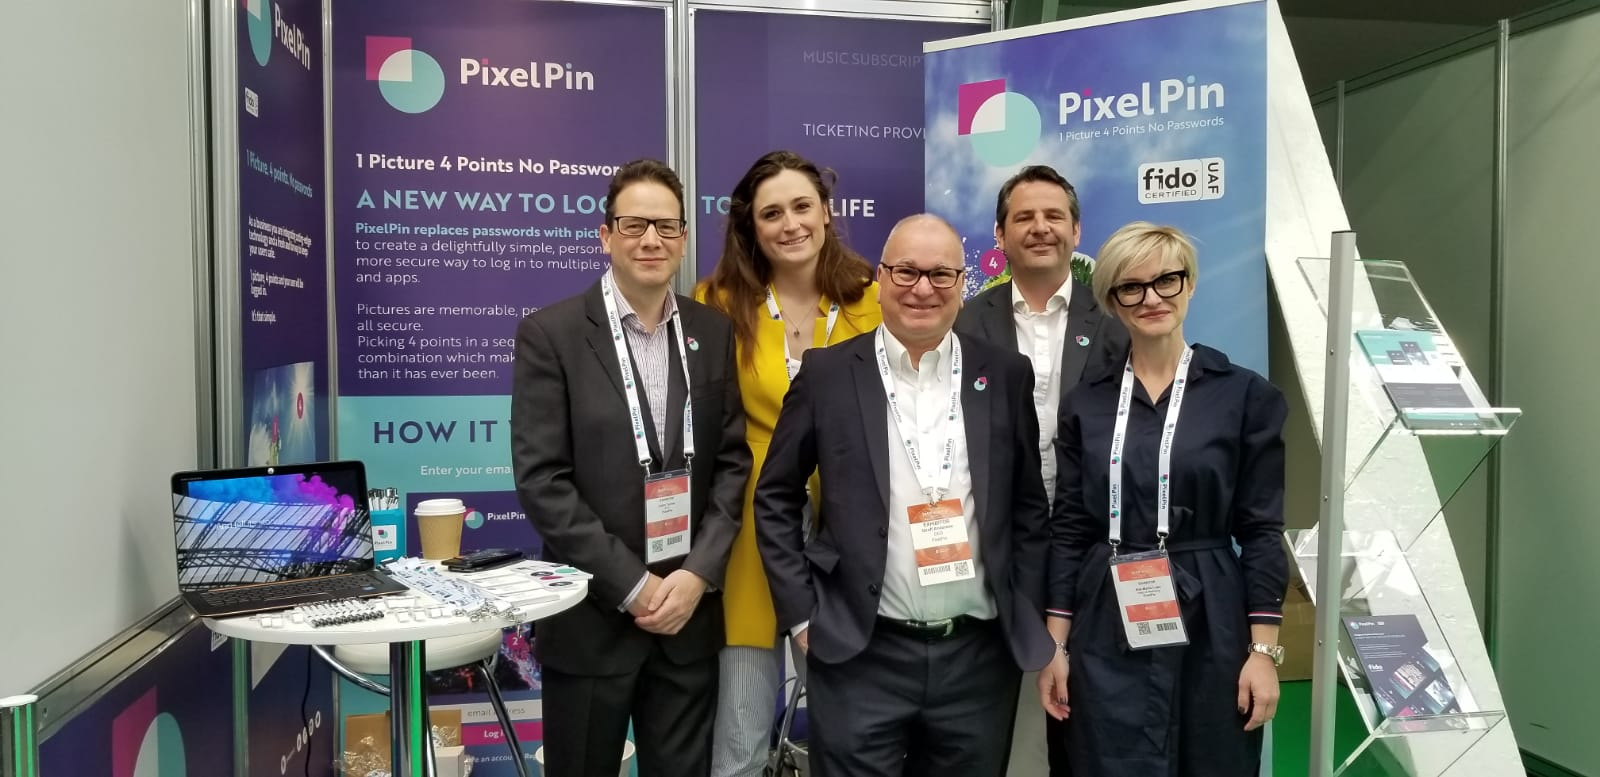 PixelPin Takes on InfoSecurity 2019